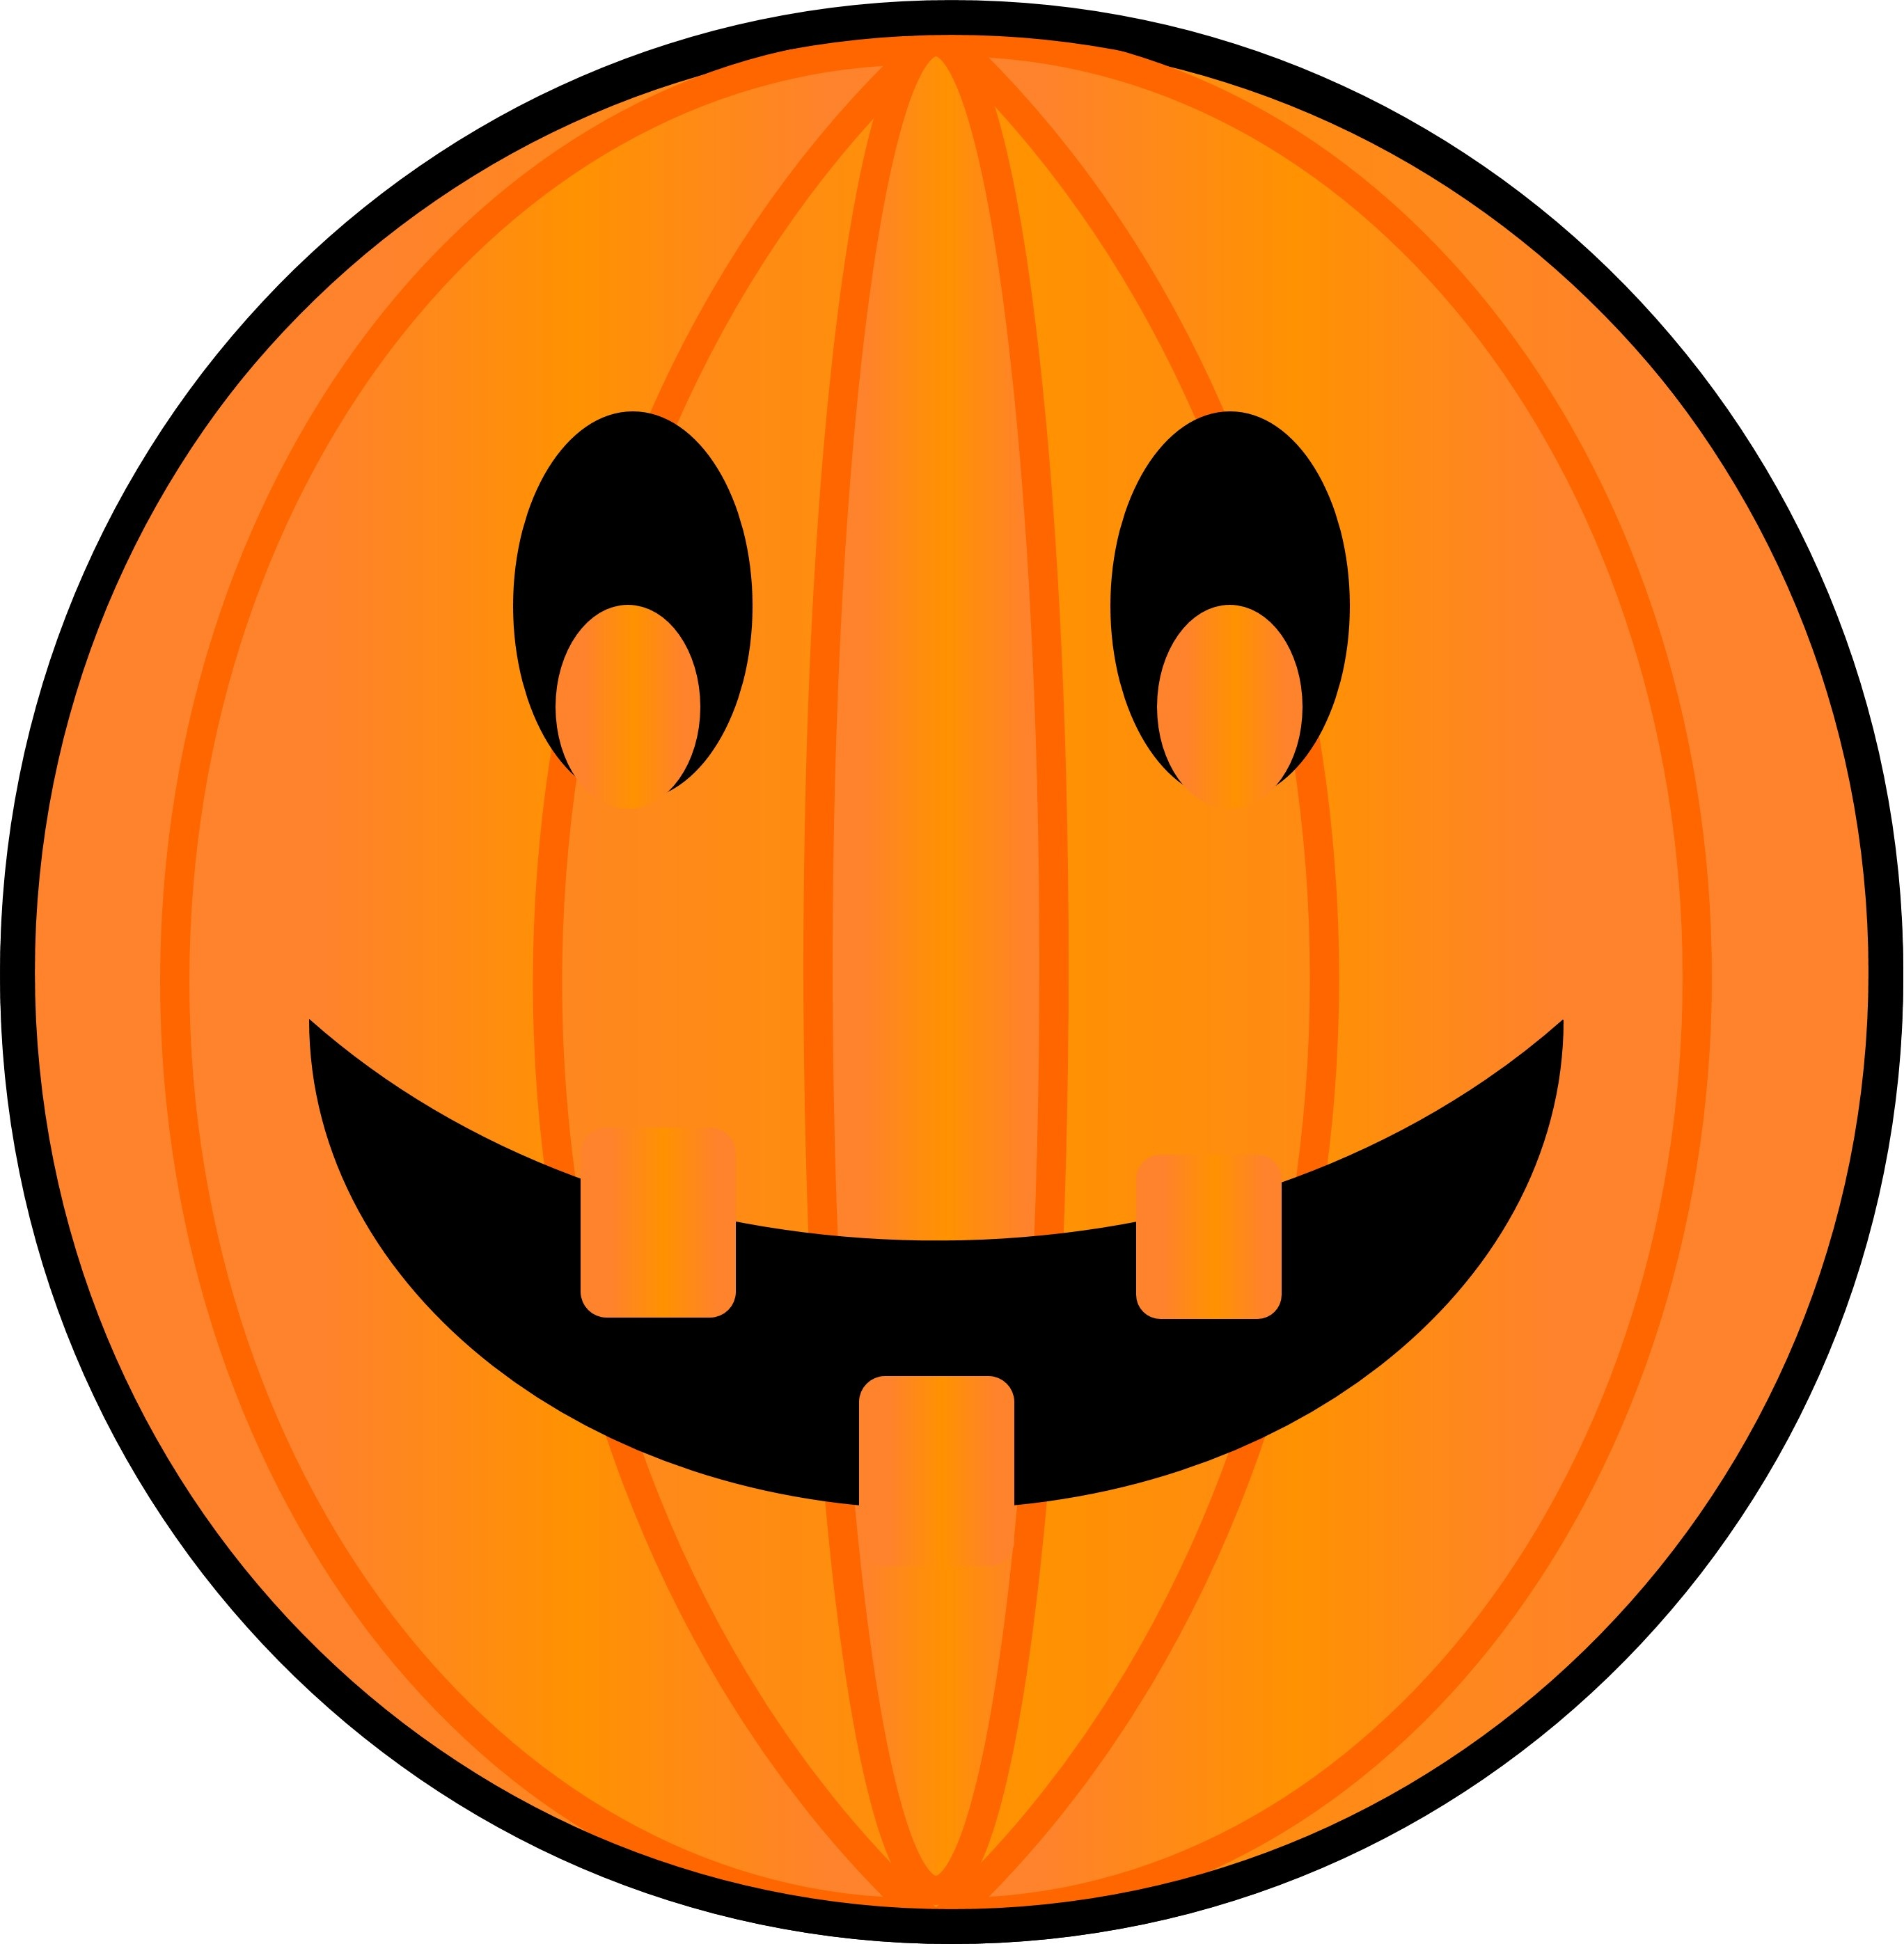 Symbol Of The Halloween In The Form Of A Pumpkin Free Image